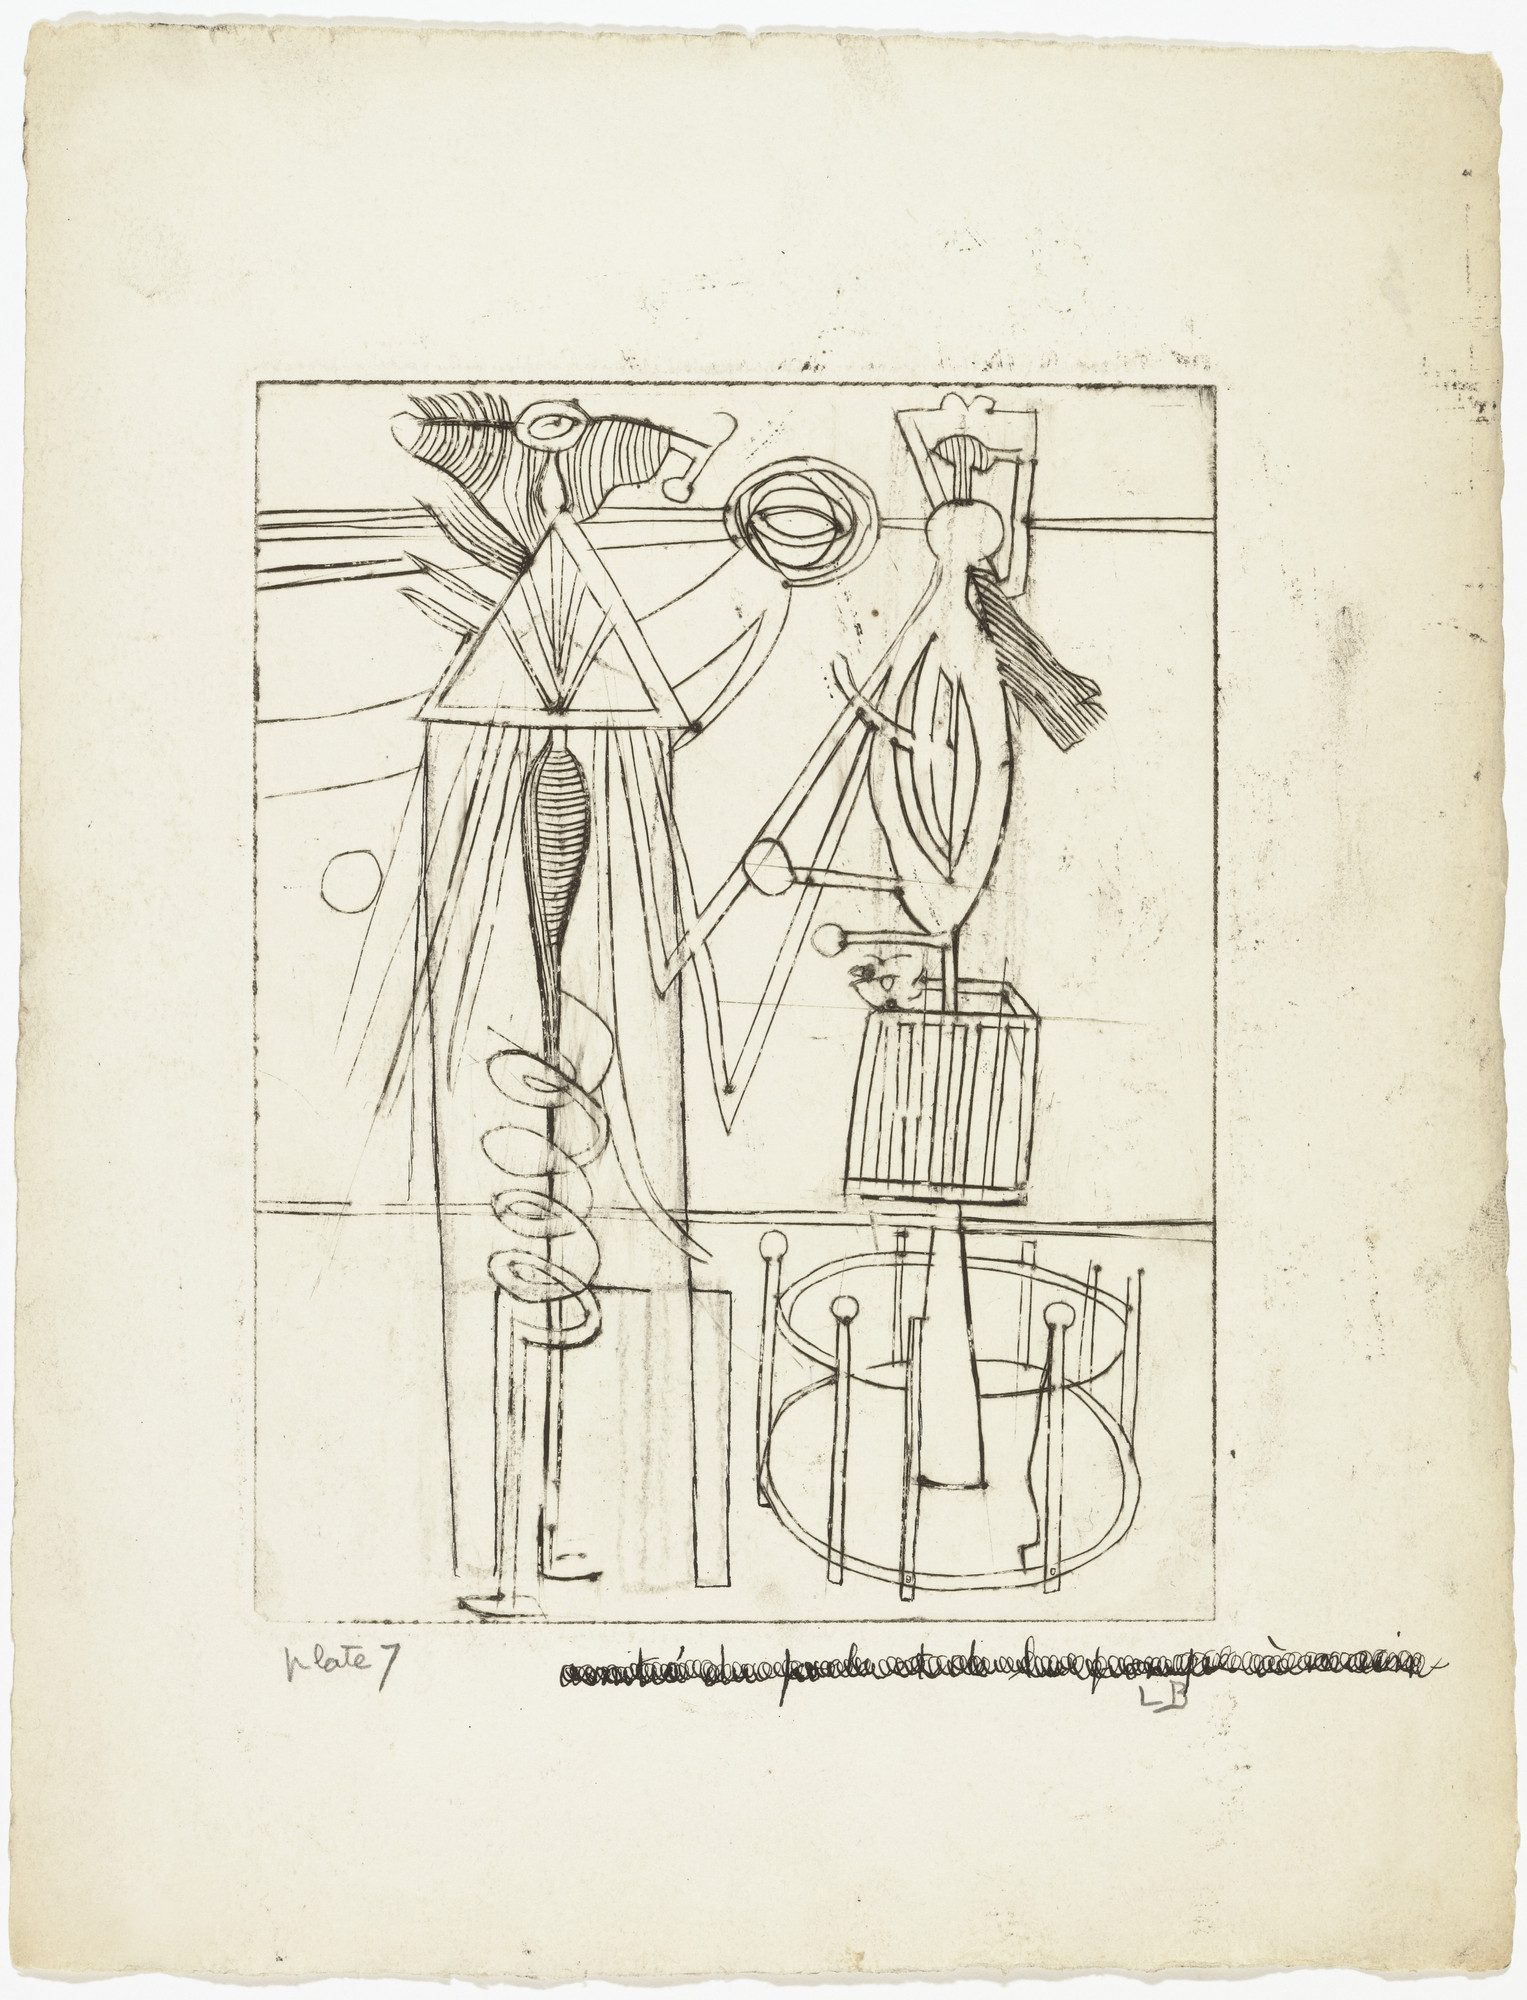 Louise Bourgeois. Plate 7 of 9, from the illustrated book, He Disappeared into Complete Silence. 1946-1947